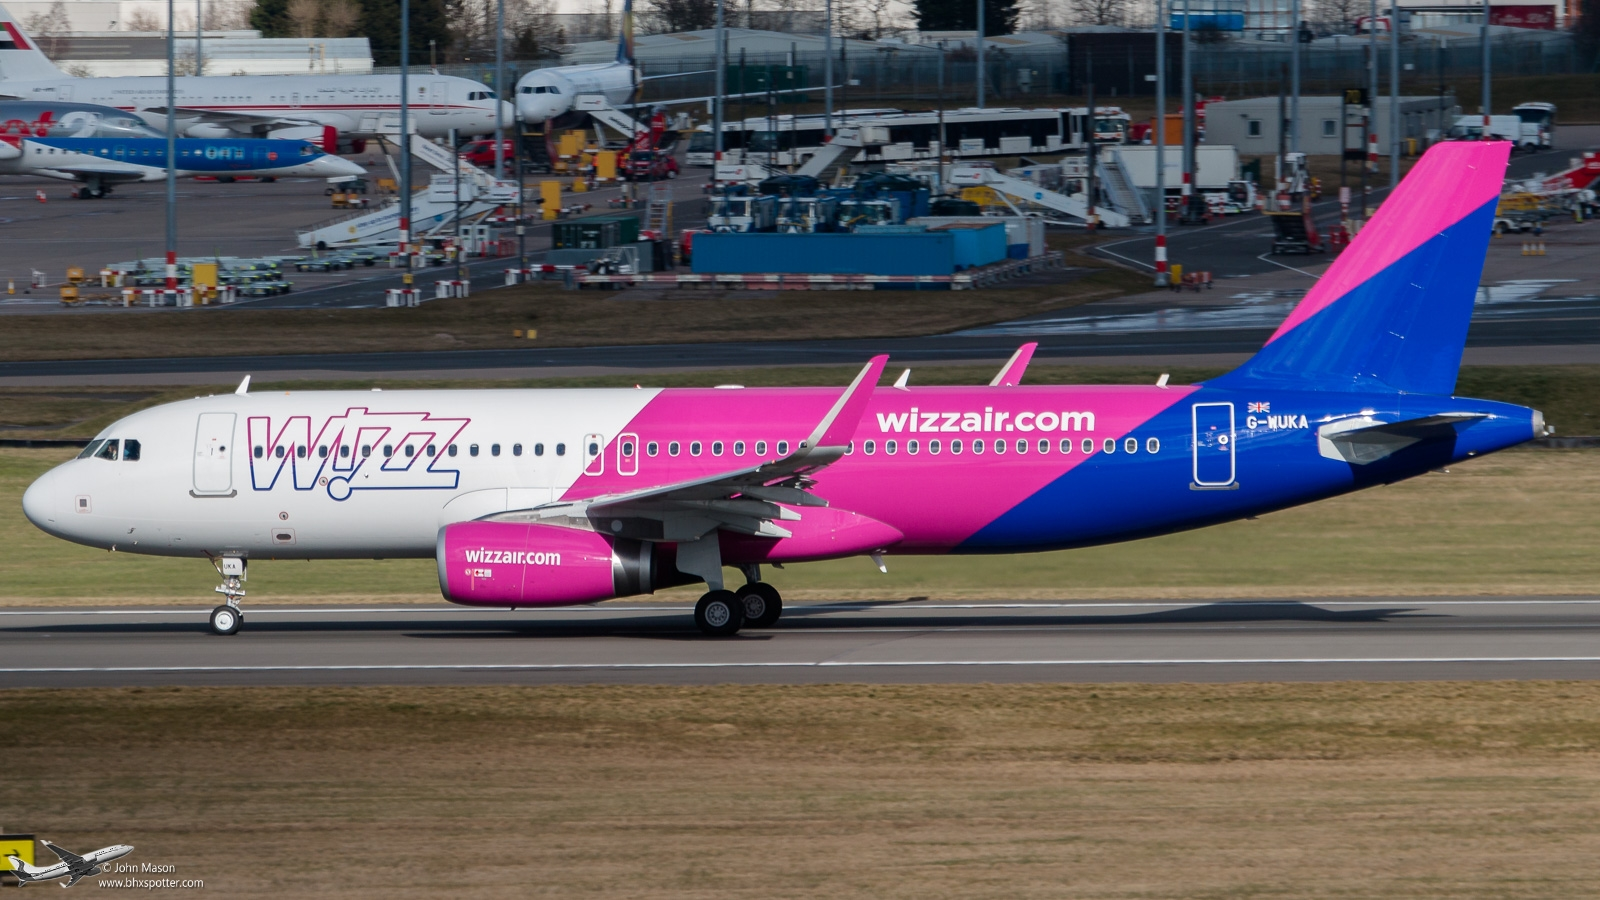 G-WUKA A320SL WIZZAIR UK.